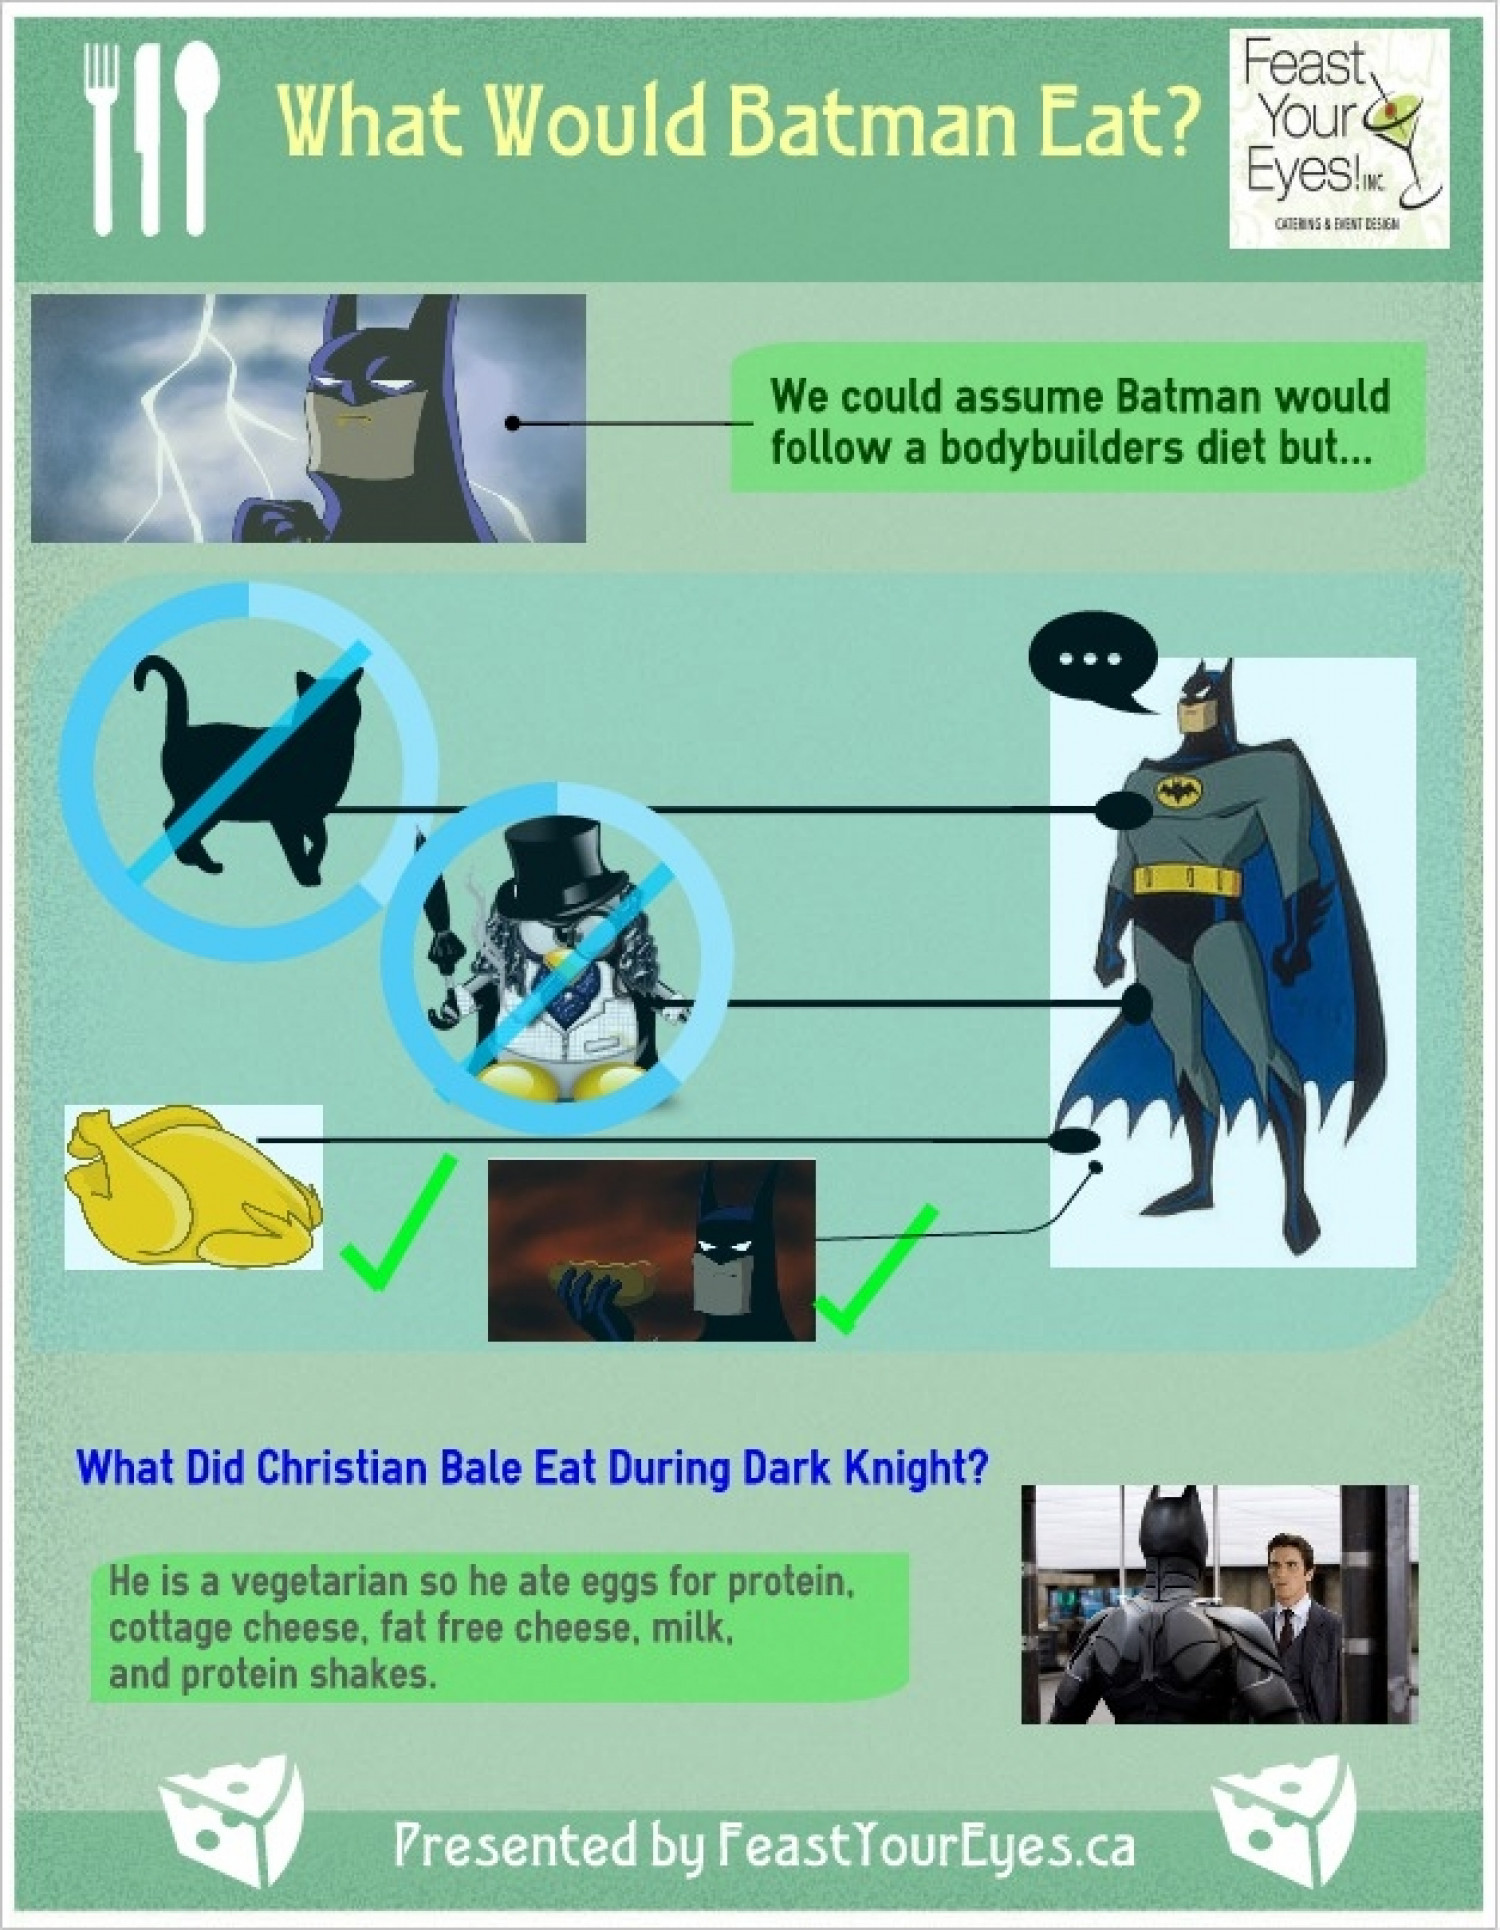 What Would Batman Eat? Infographic